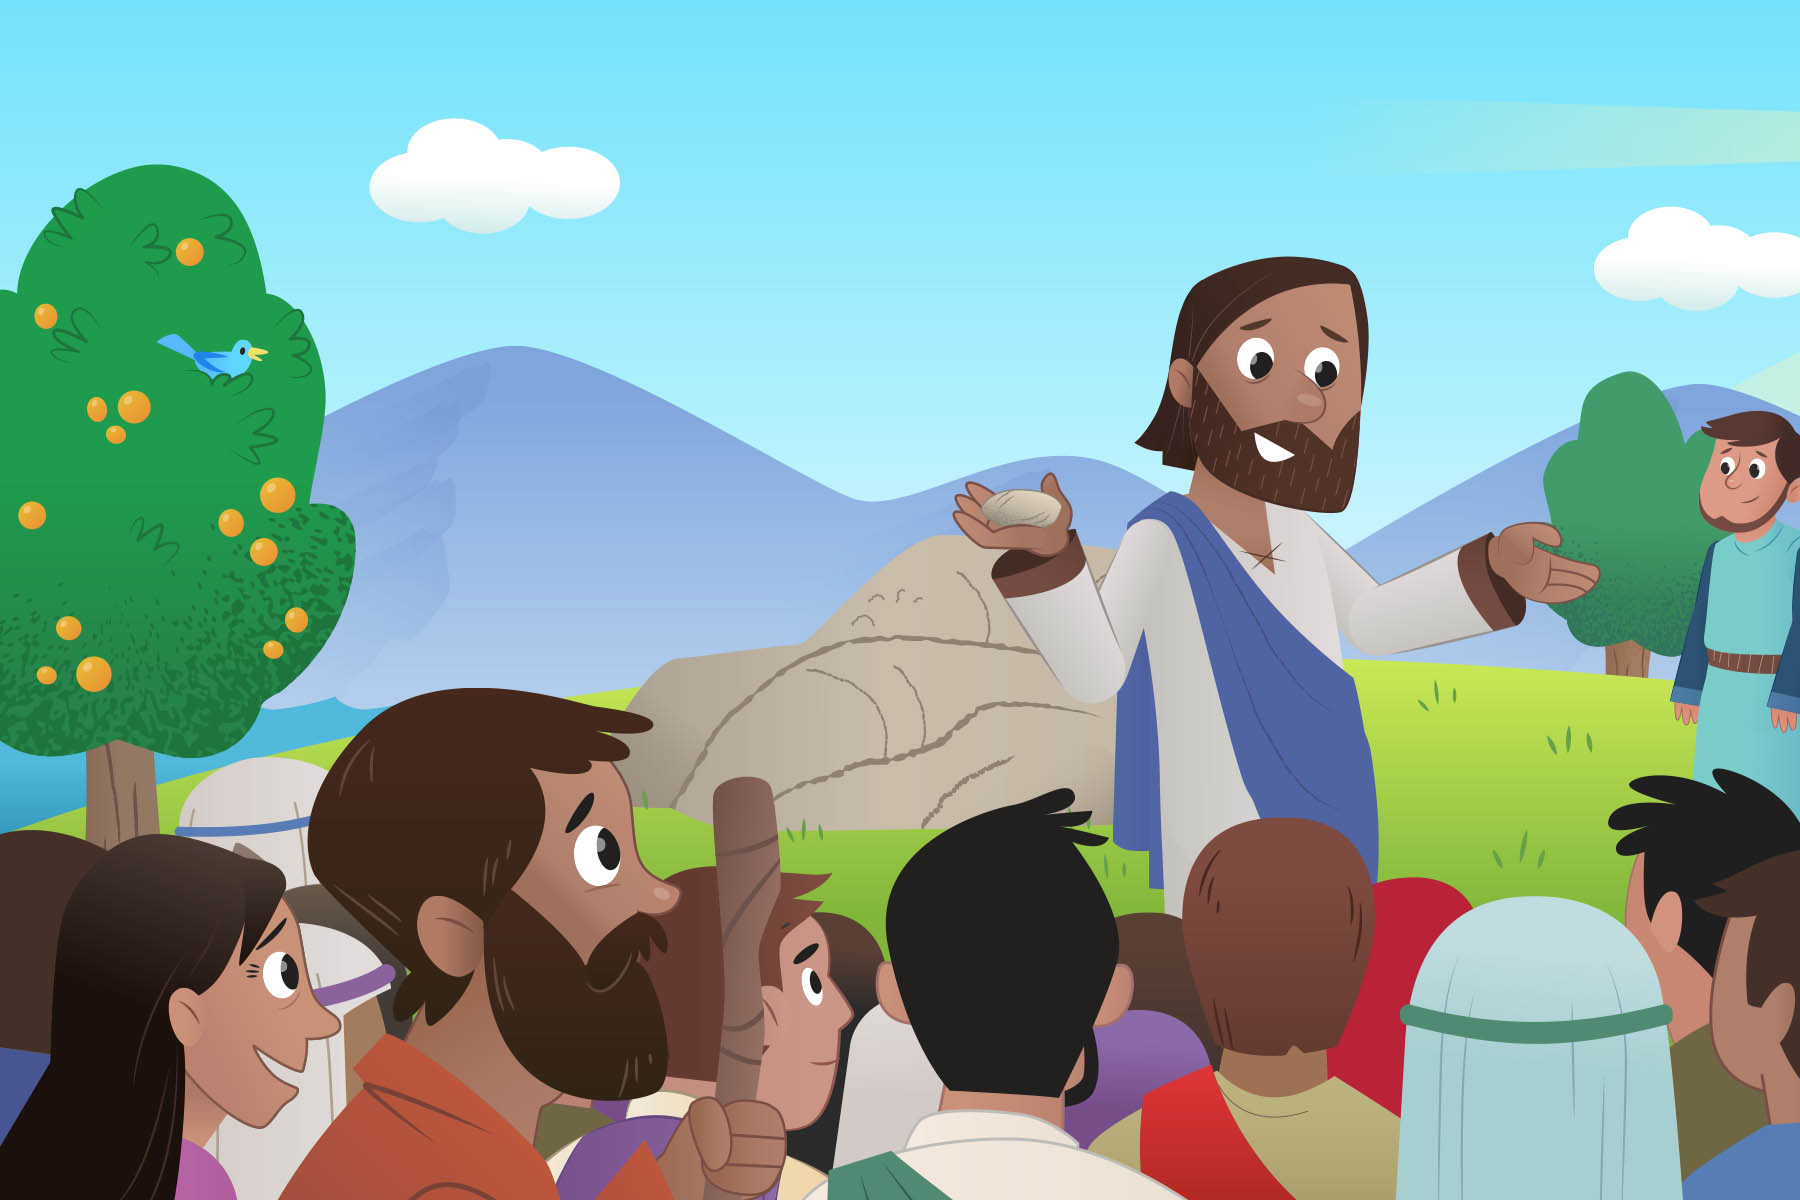 Oven Bits – Our work with YouVersion to create the Bible App for Kids.